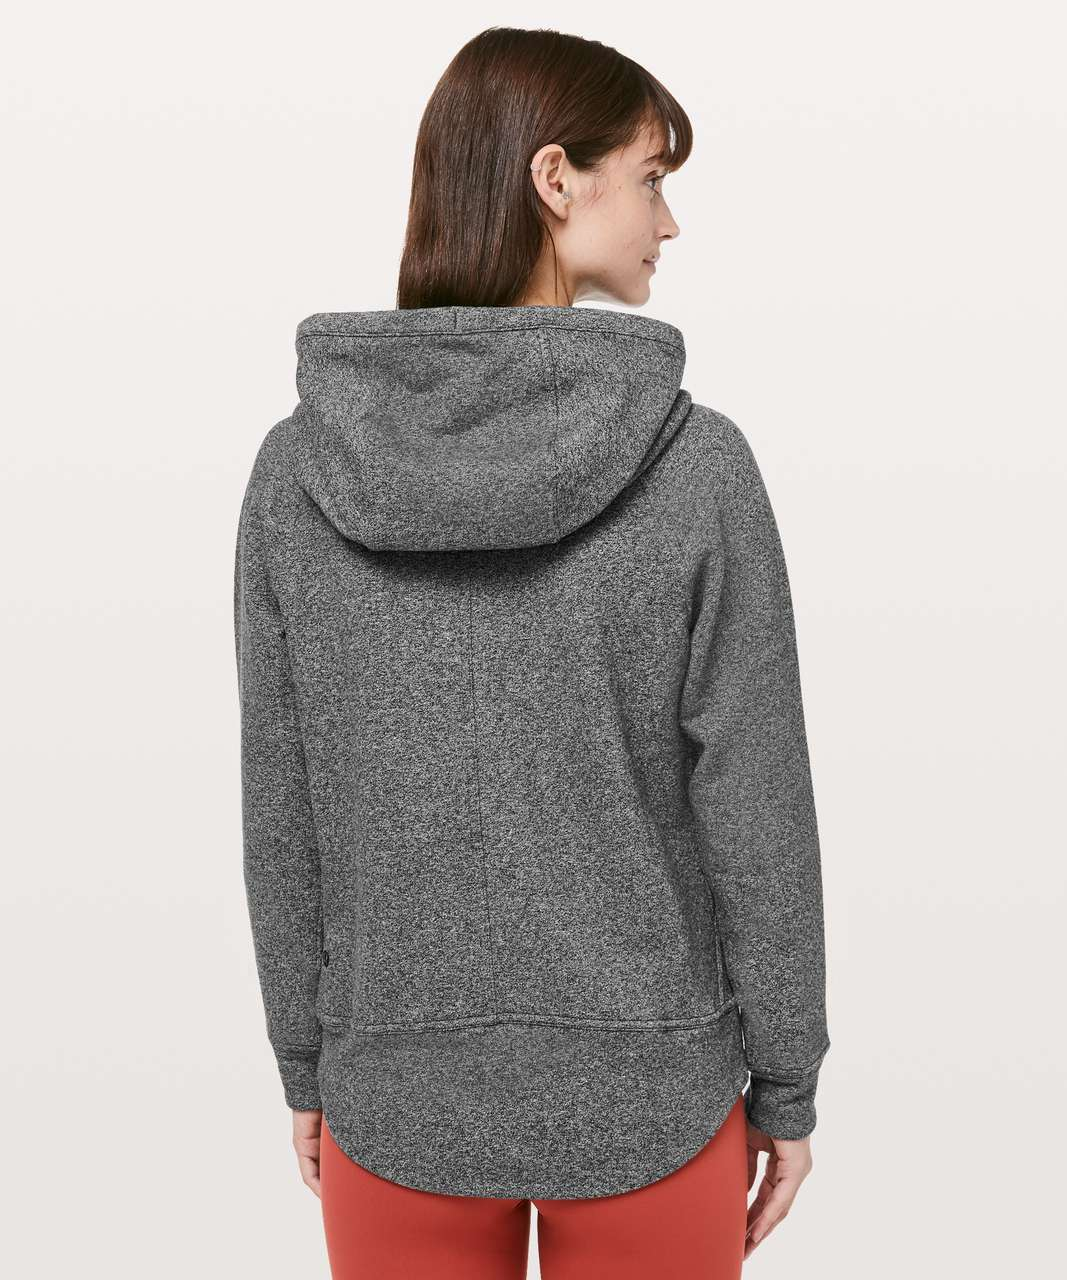 Lululemon Catch A Moment Hoodie - Heathered Speckled Black / Black